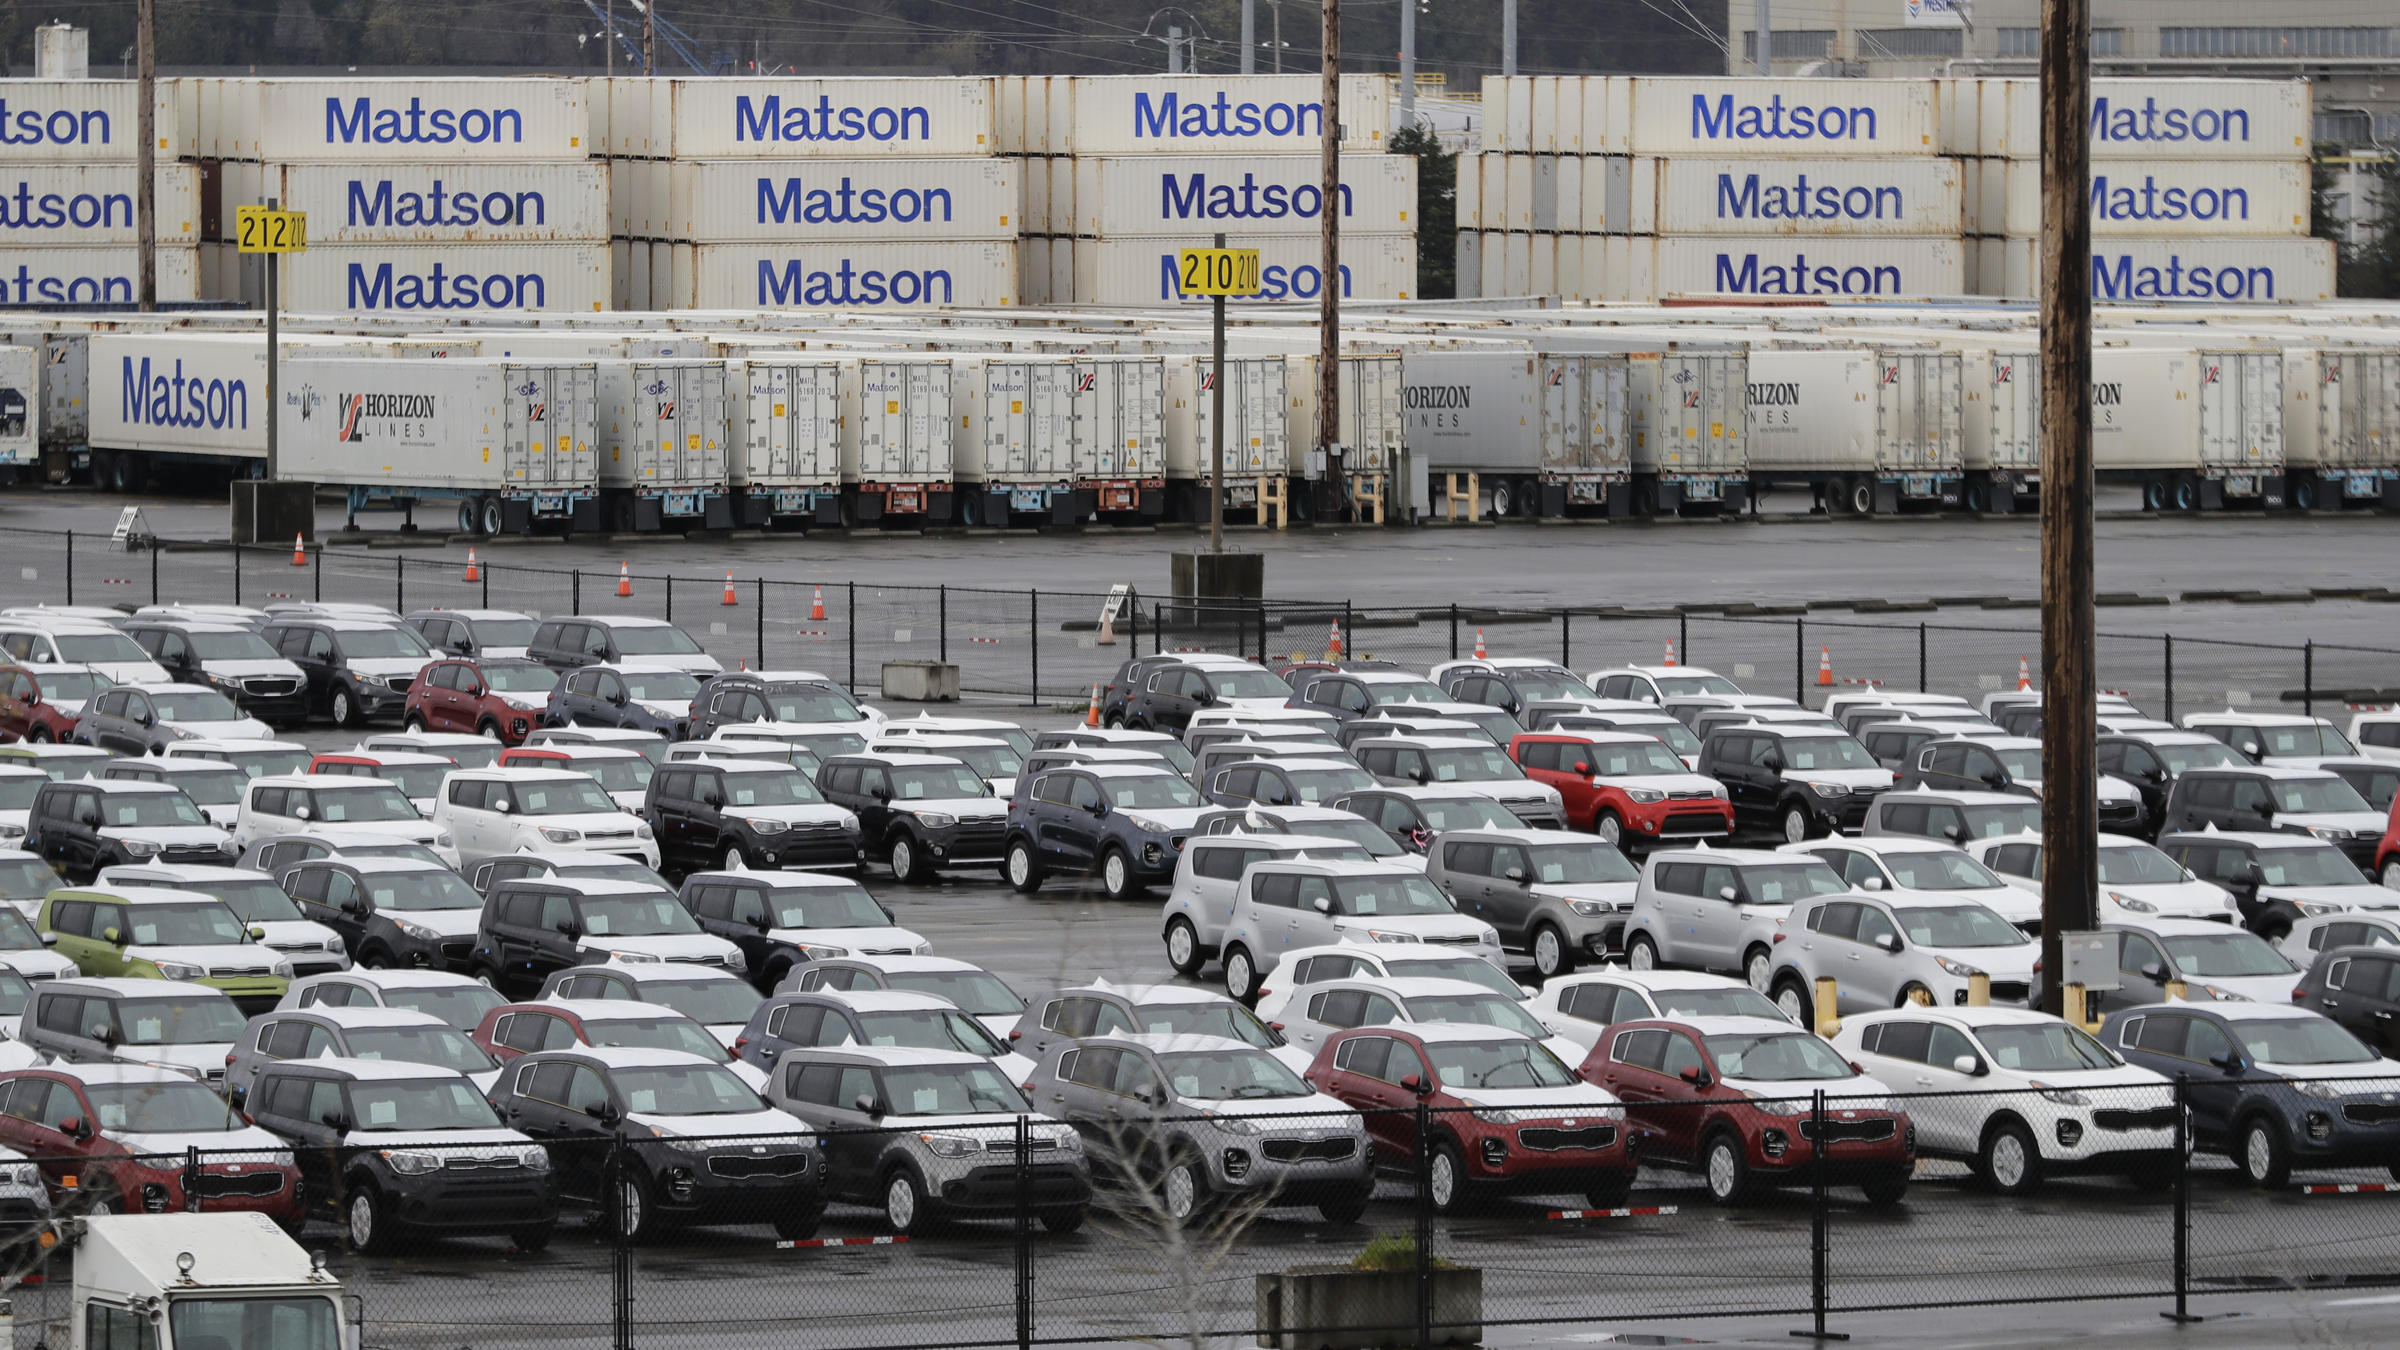 Trump is reportedly considering a plan to slap tariffs on imported cars